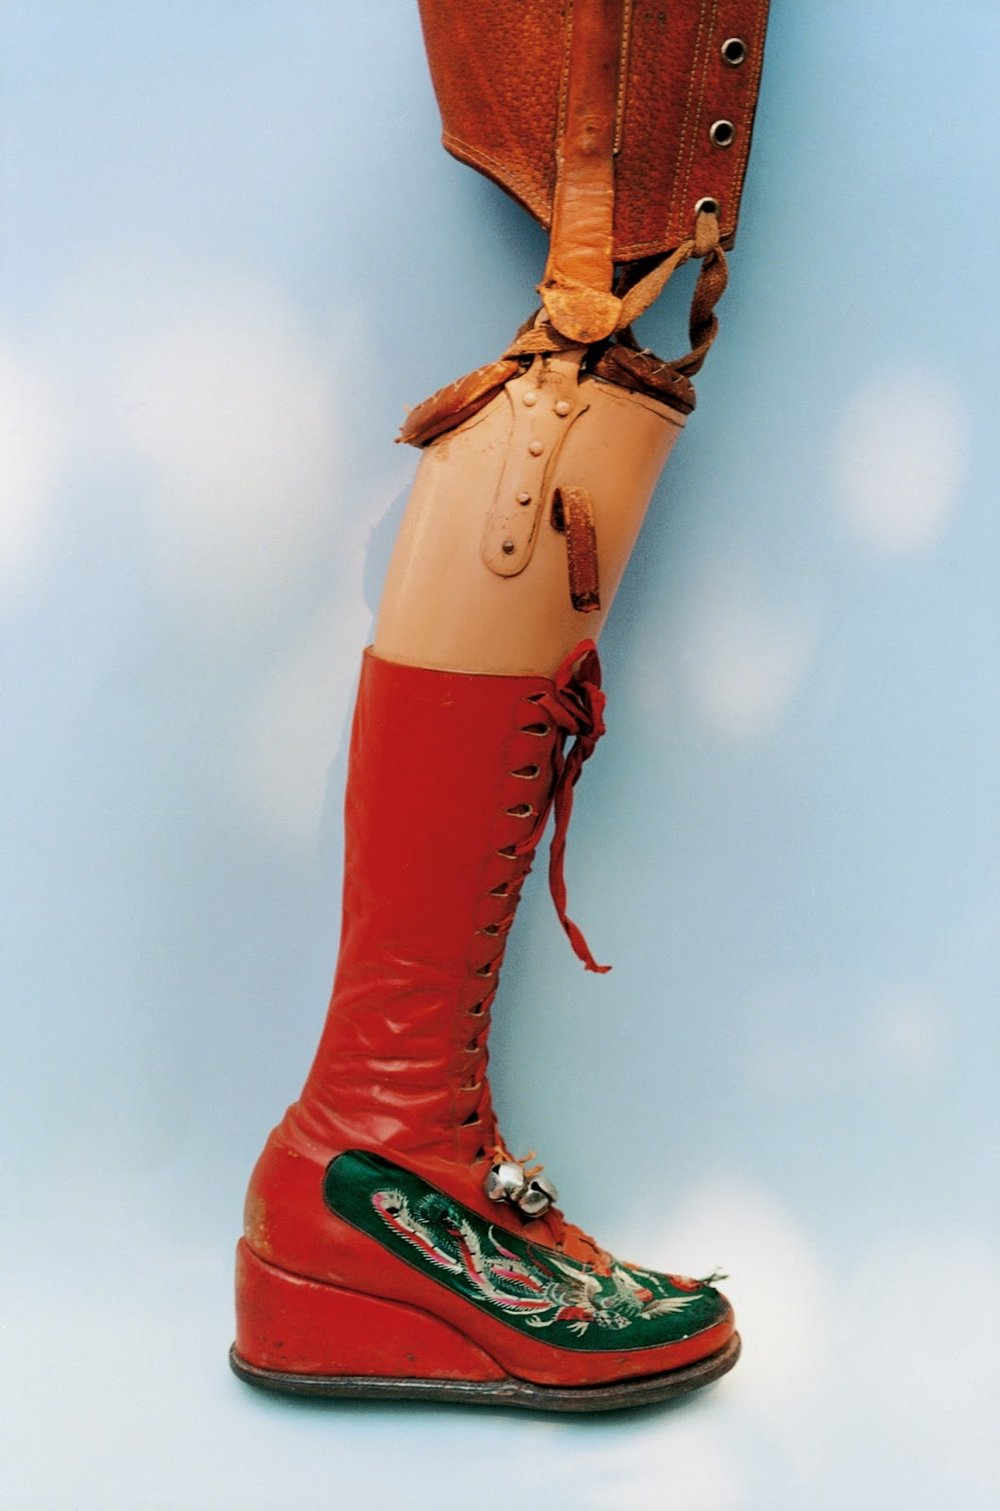 #36 Kahlo's leg was amputated in 1953. She designed this prosthetic leg with embroidered red lace-up boots and a bell attached